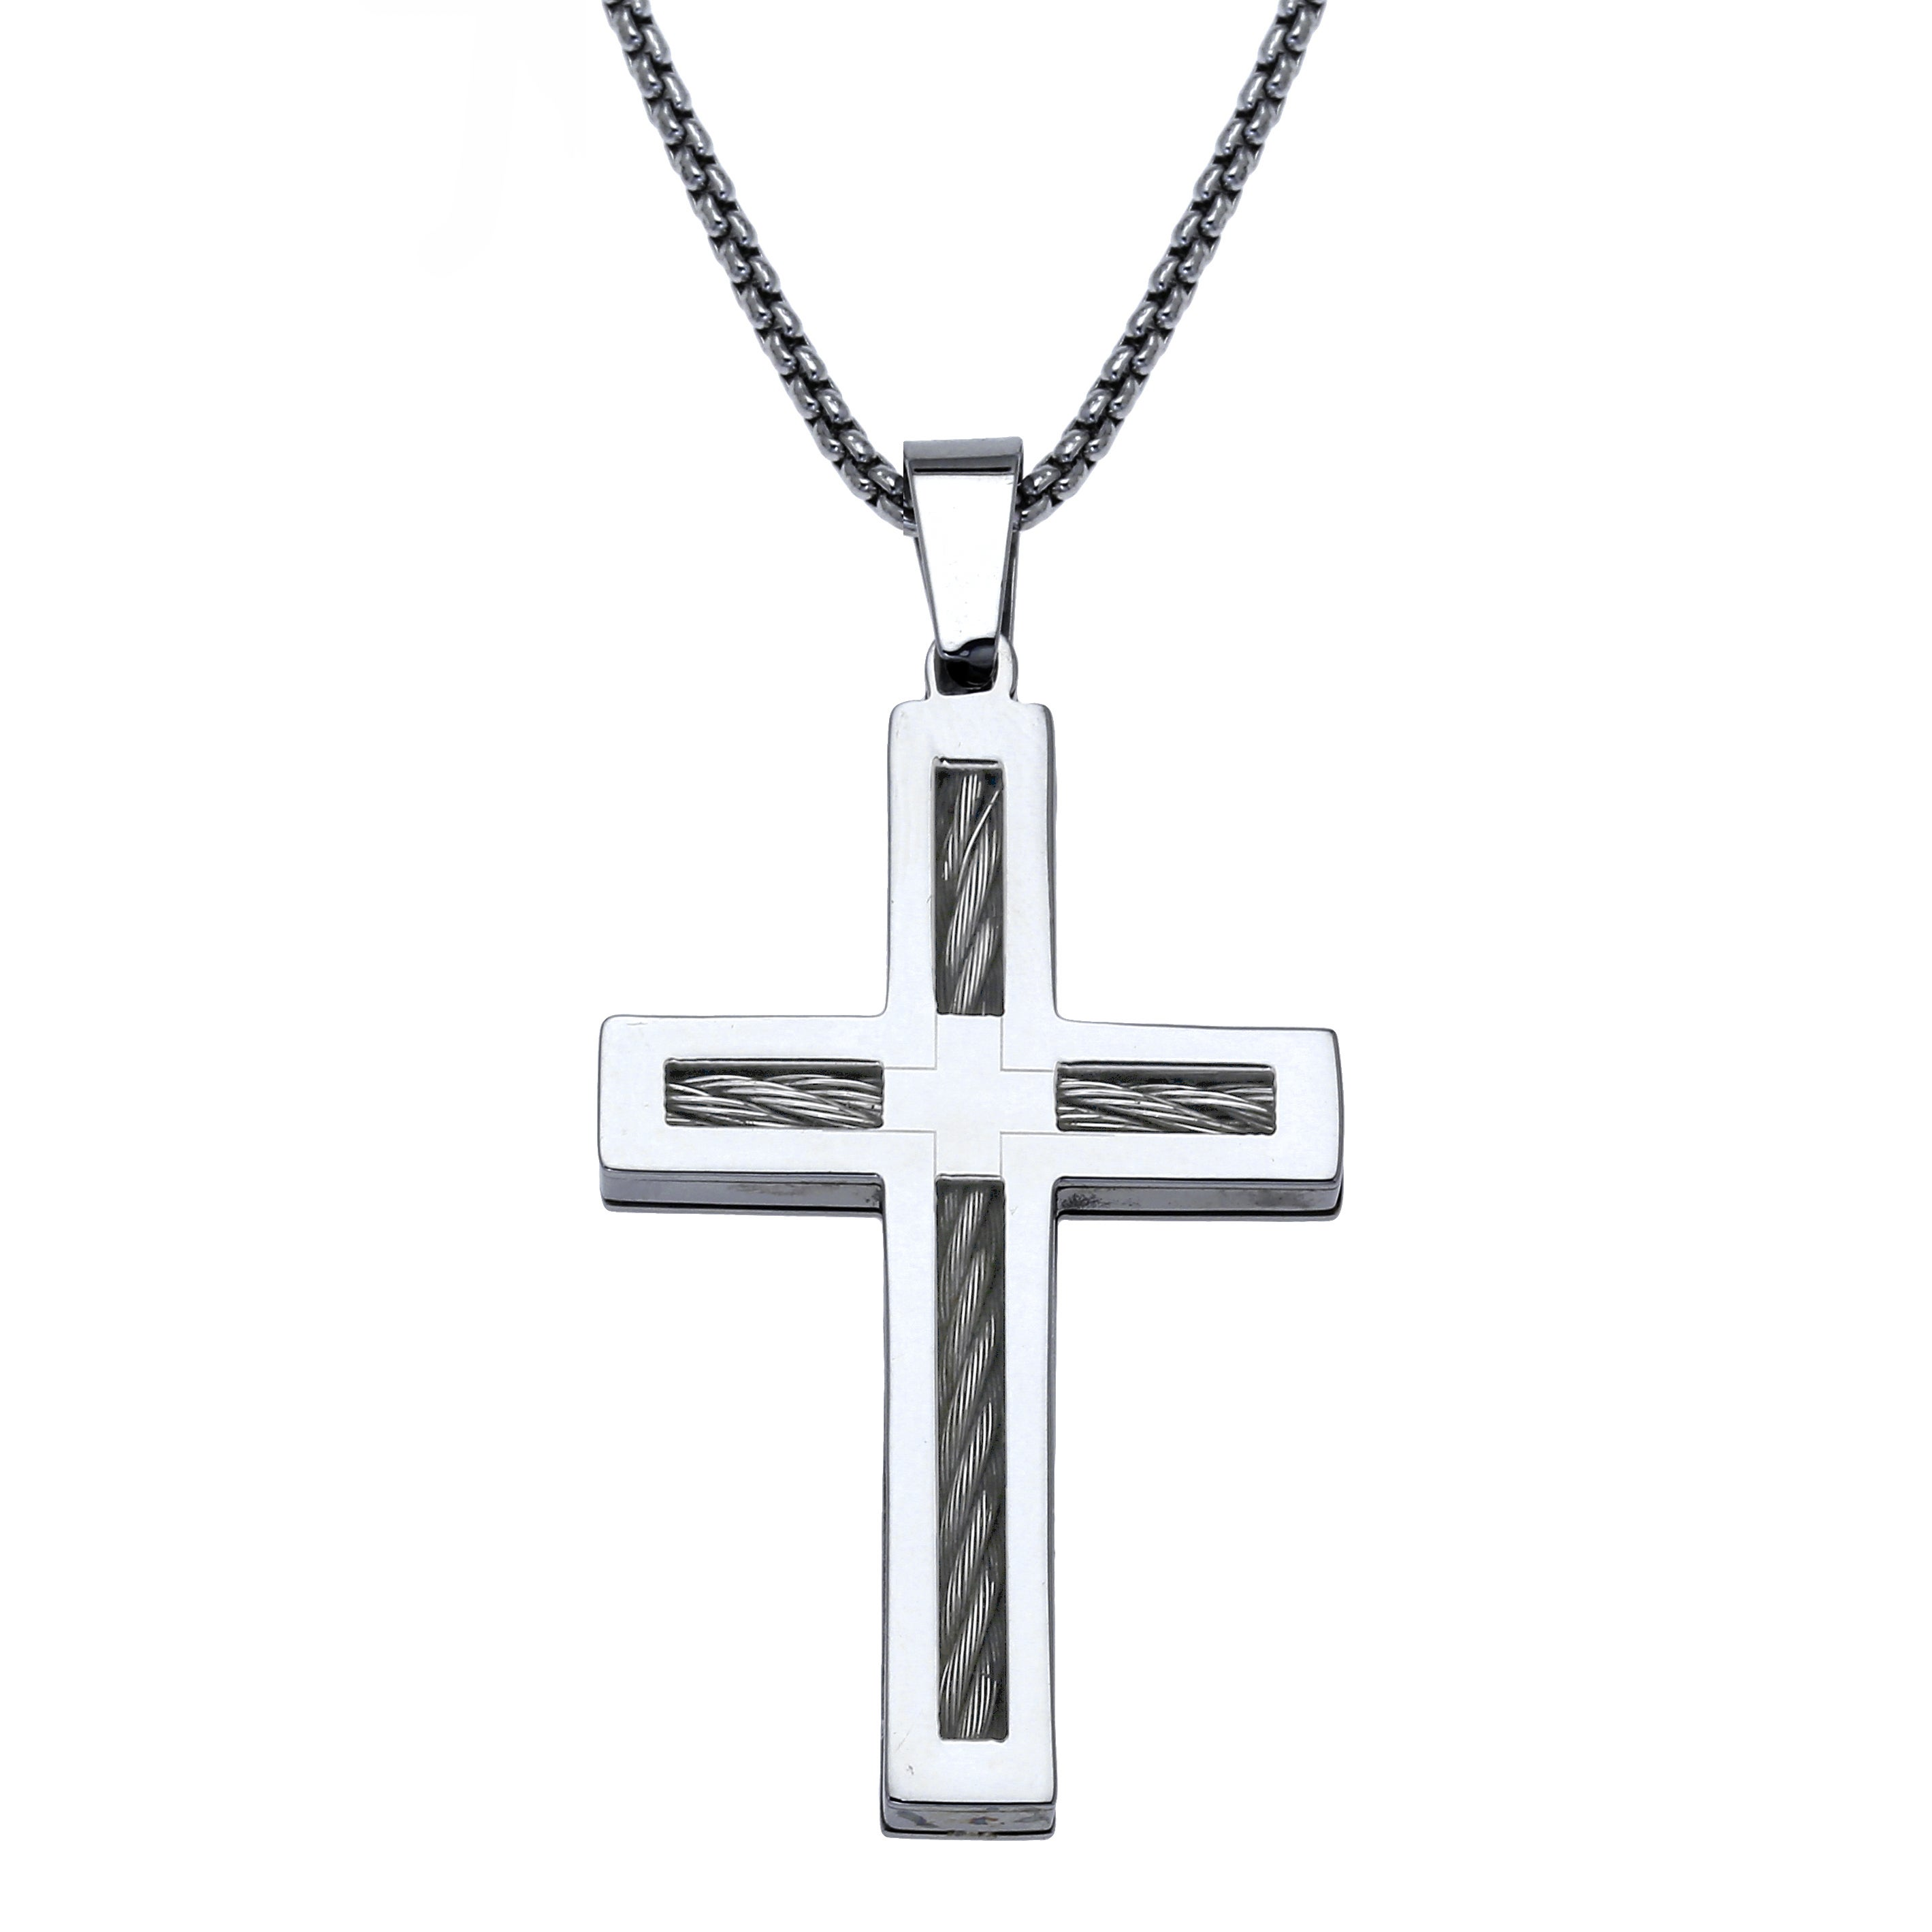 Stainless steel mens cross pendant free shipping on orders over stainless steel mens cross pendant free shipping on orders over 45 overstock 15865996 aloadofball Image collections